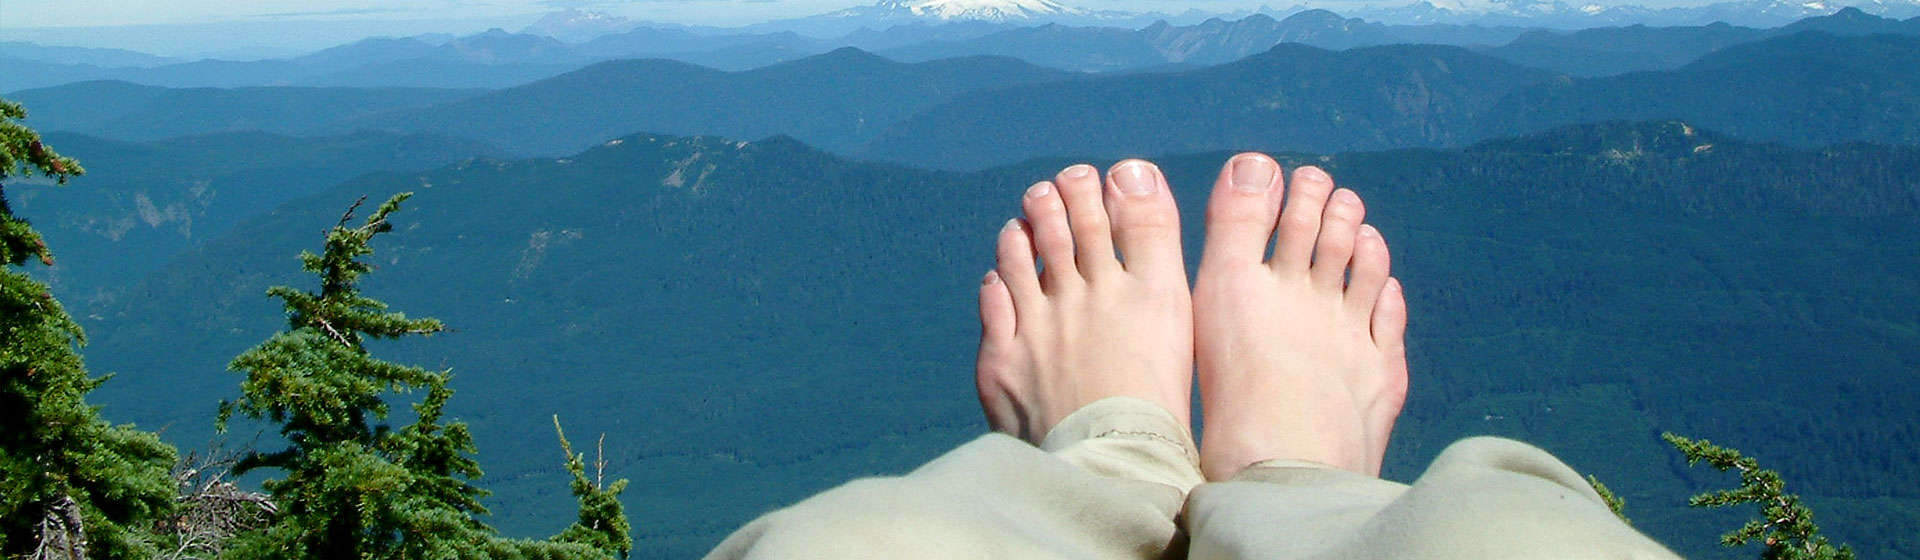 Hiking With Plantar Fasciitis (Boots & Cure) - HikingGuy.com